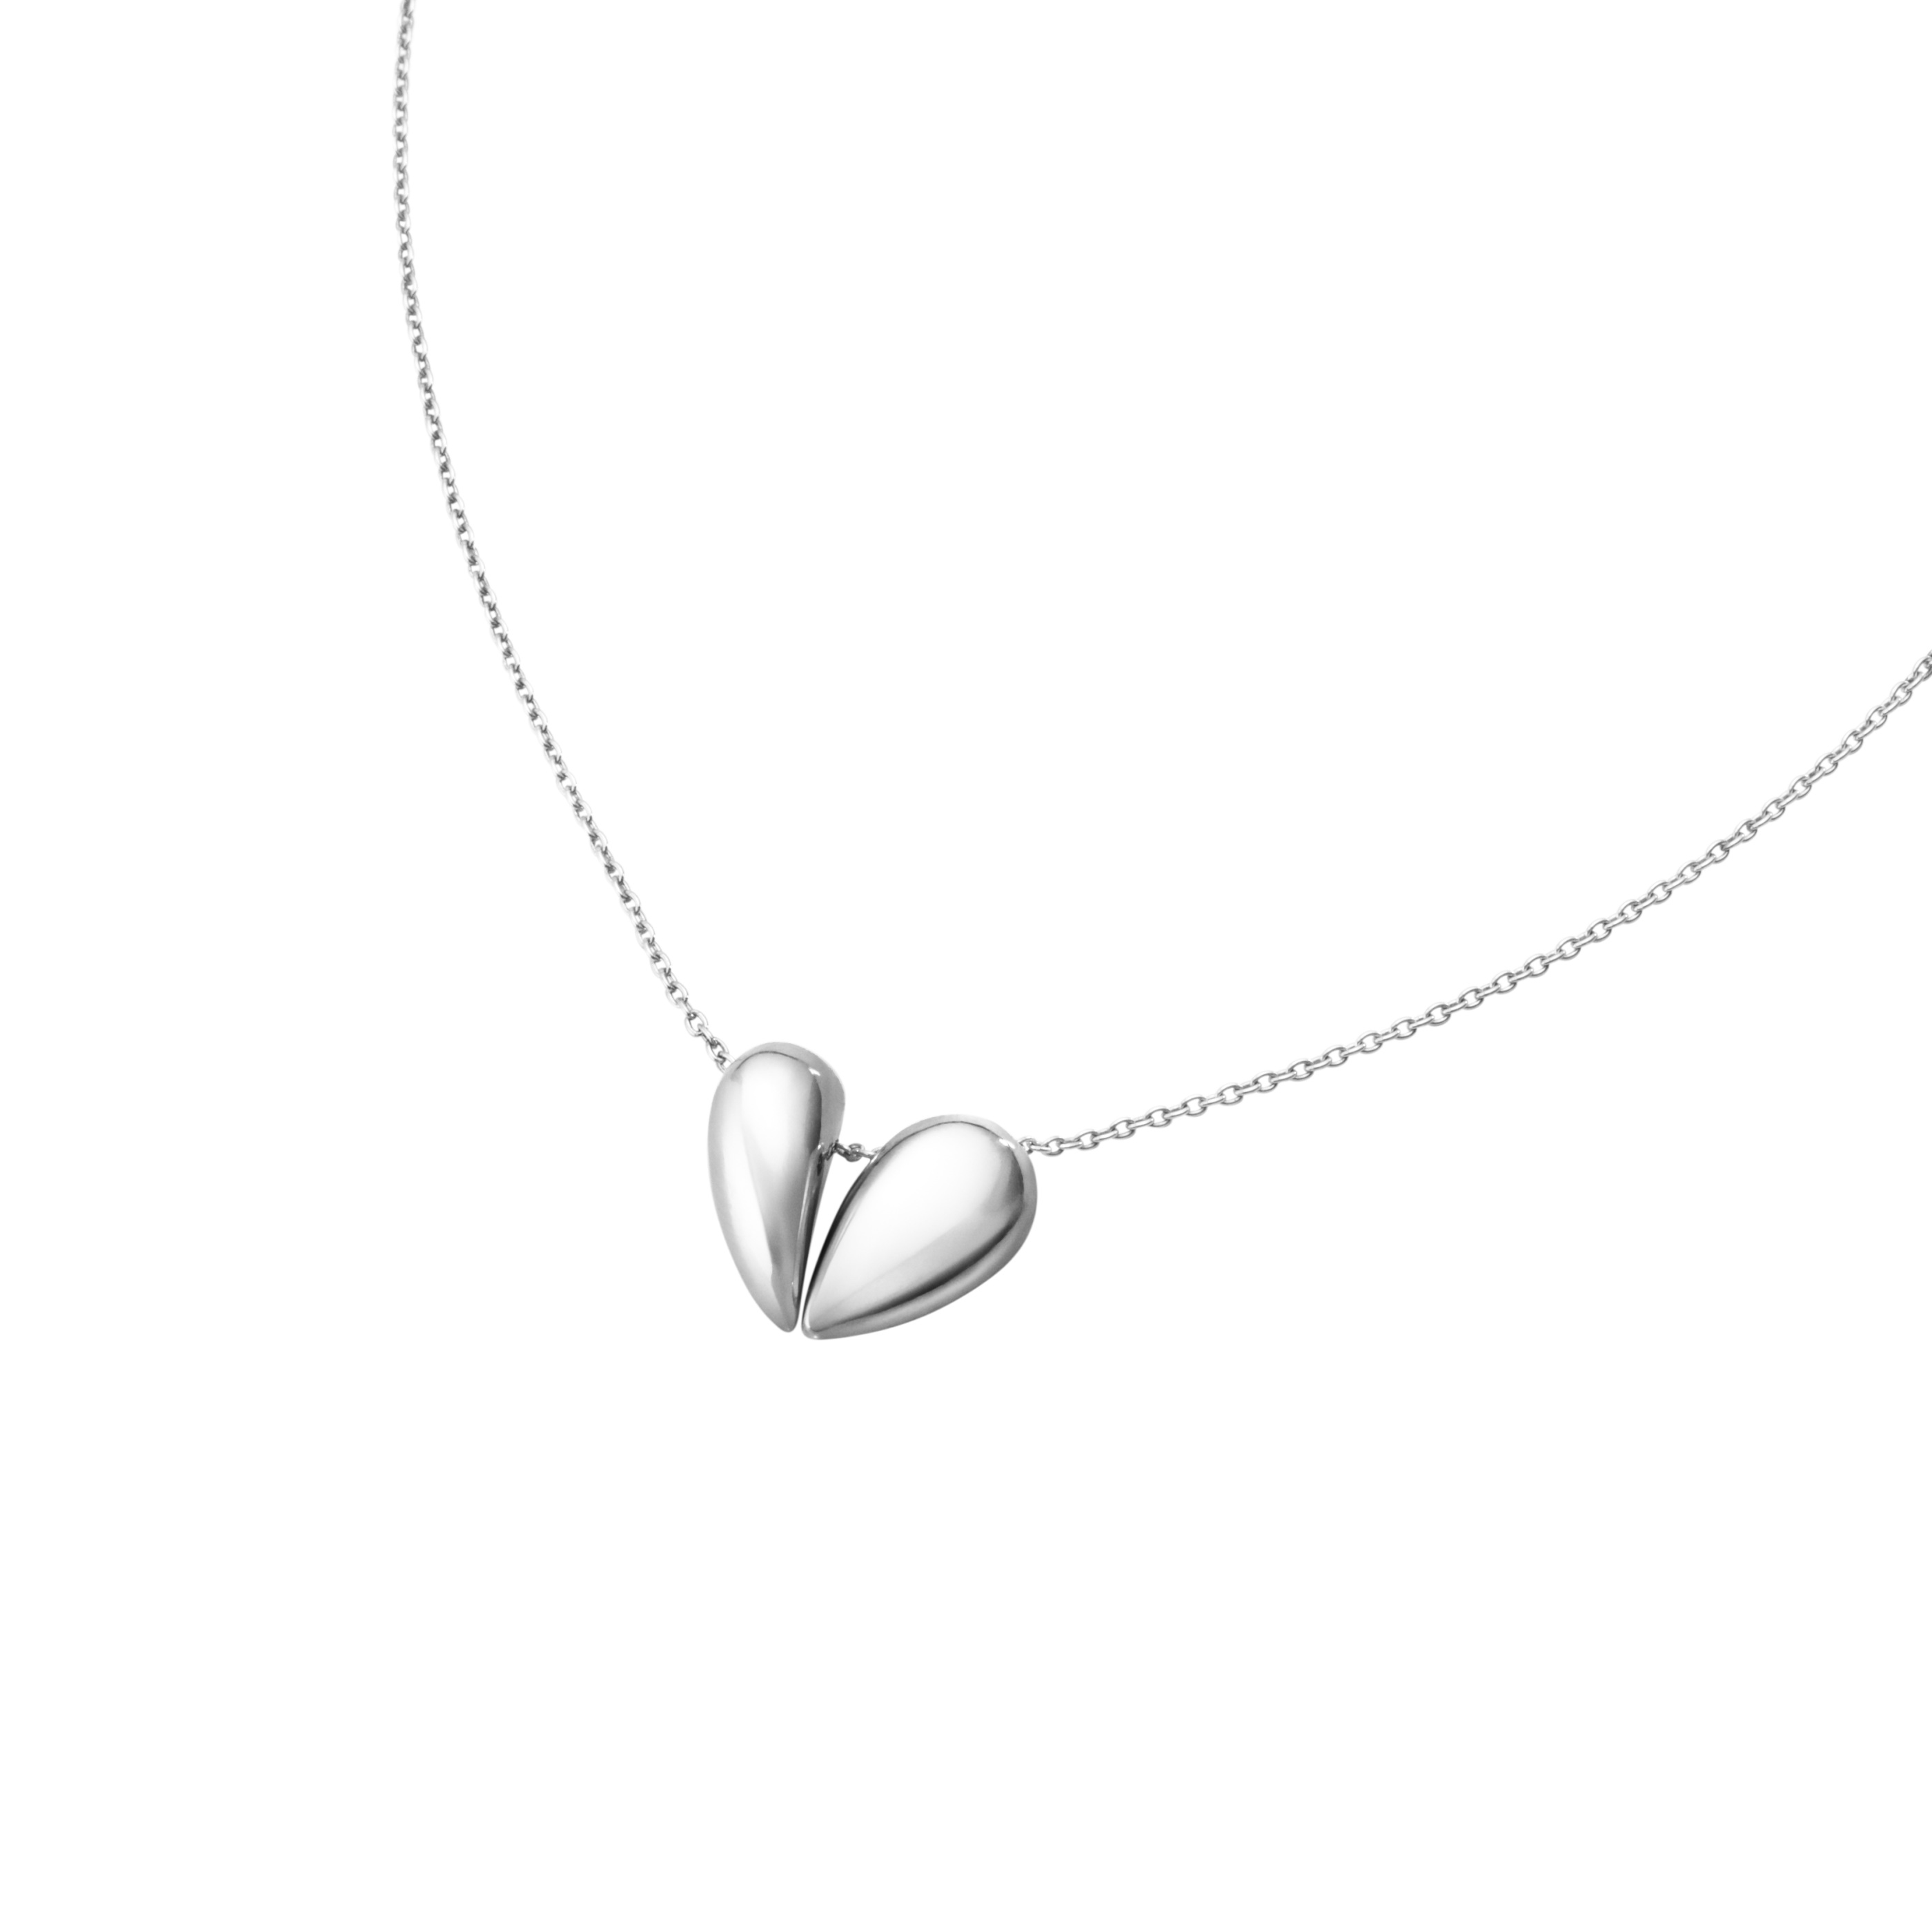 10017504_CURVE_HEART_PENDANT_638_STERLING_SILVER_2